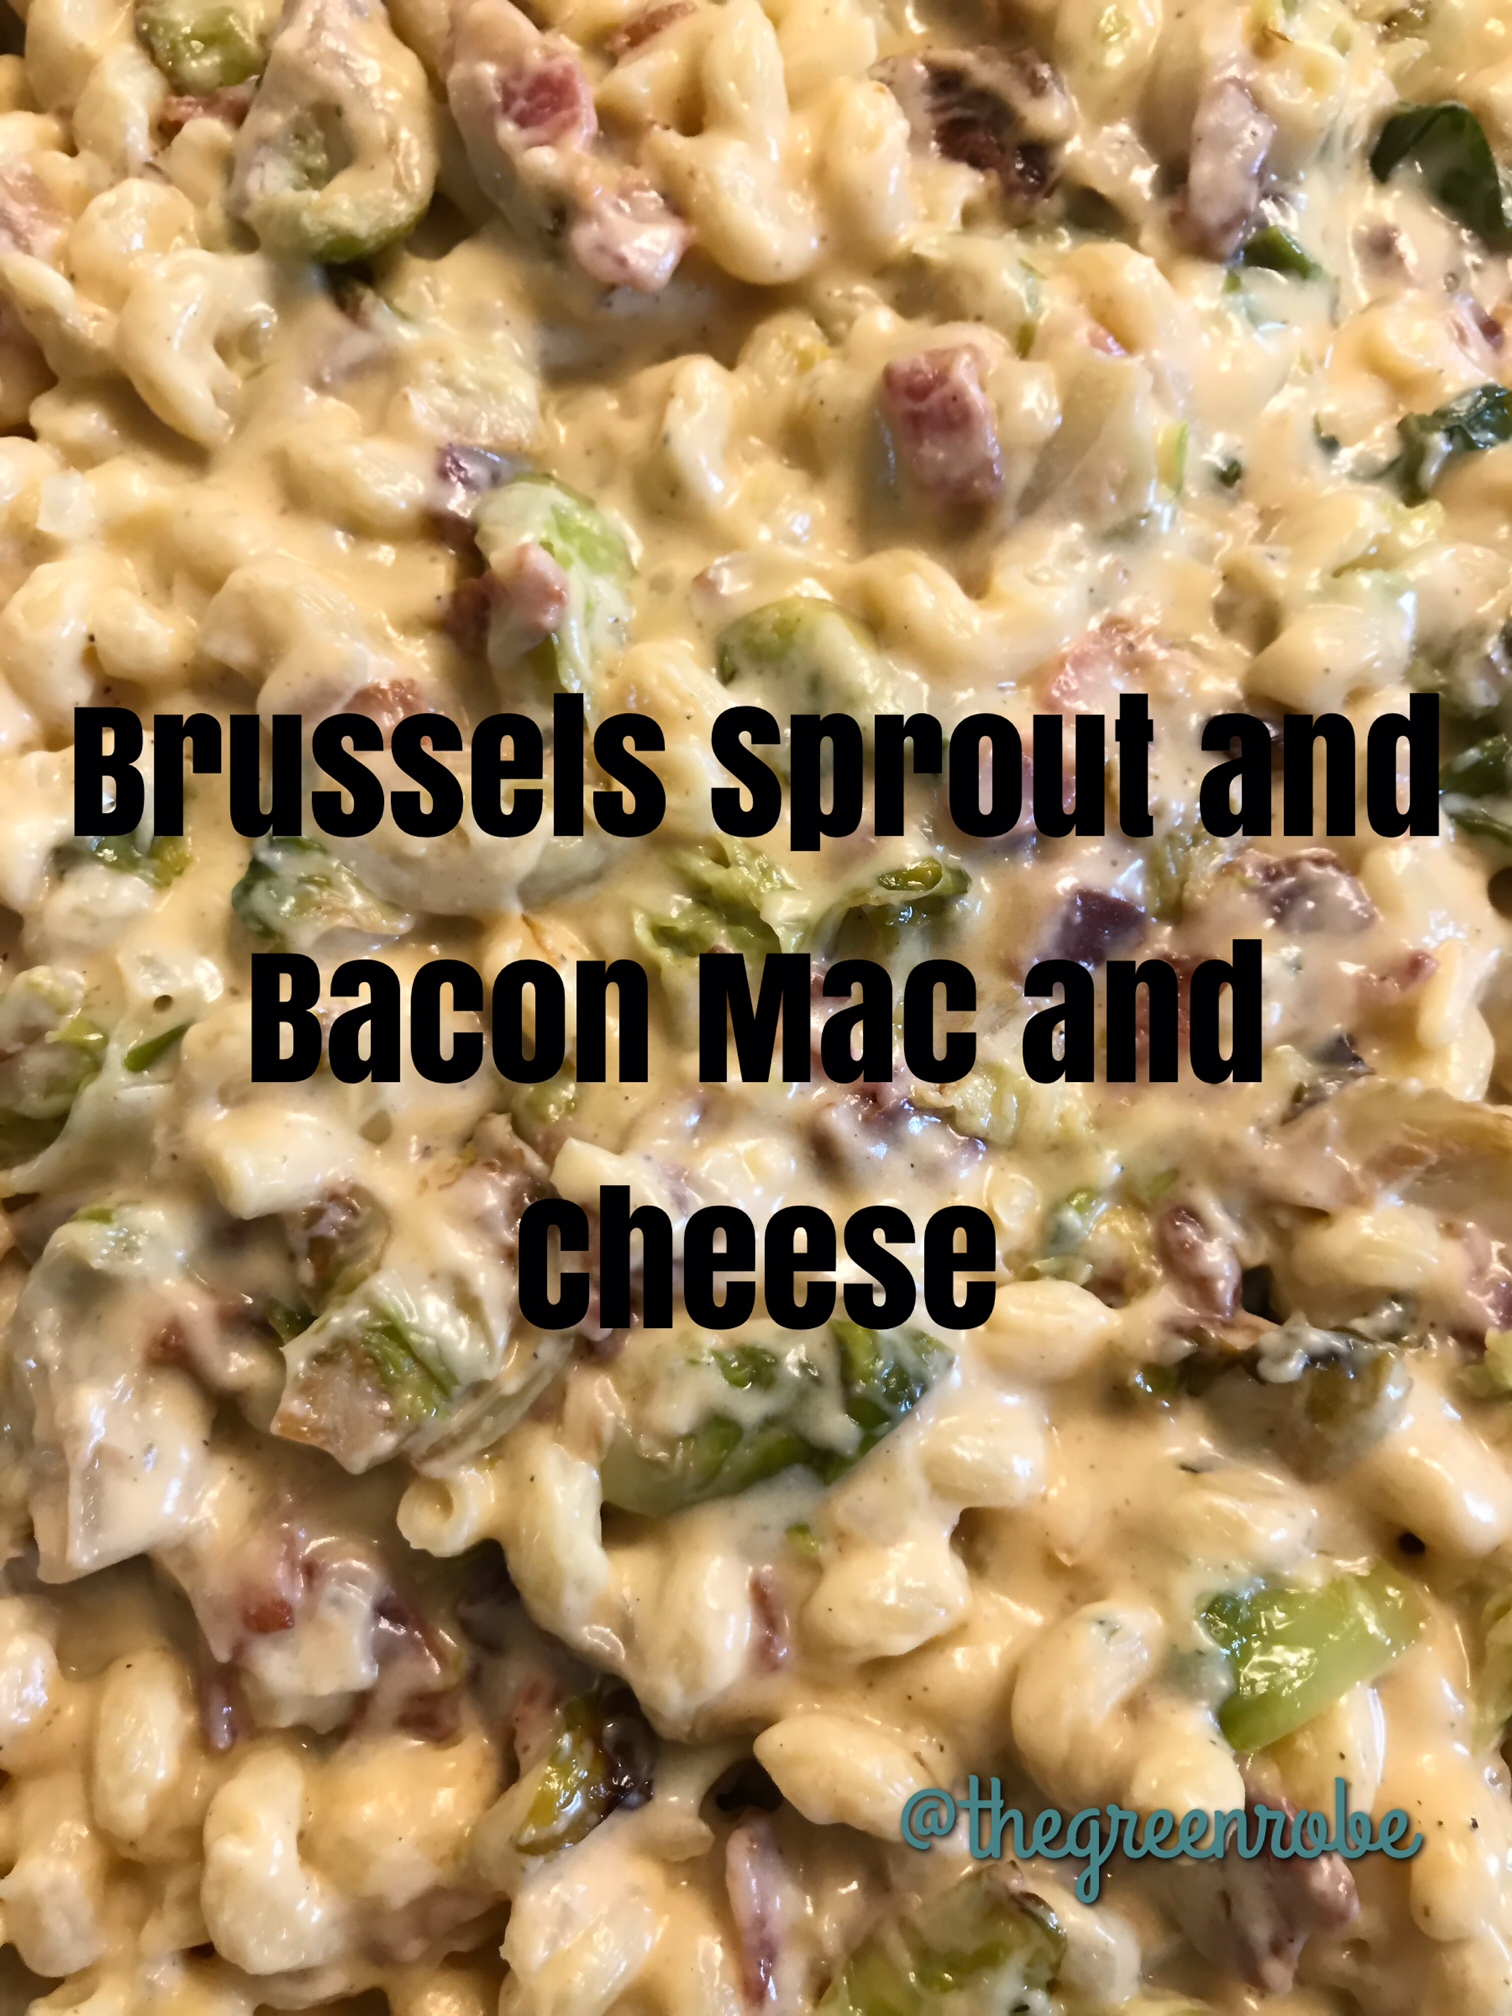 brussel sprouts and bacon mac and cheese